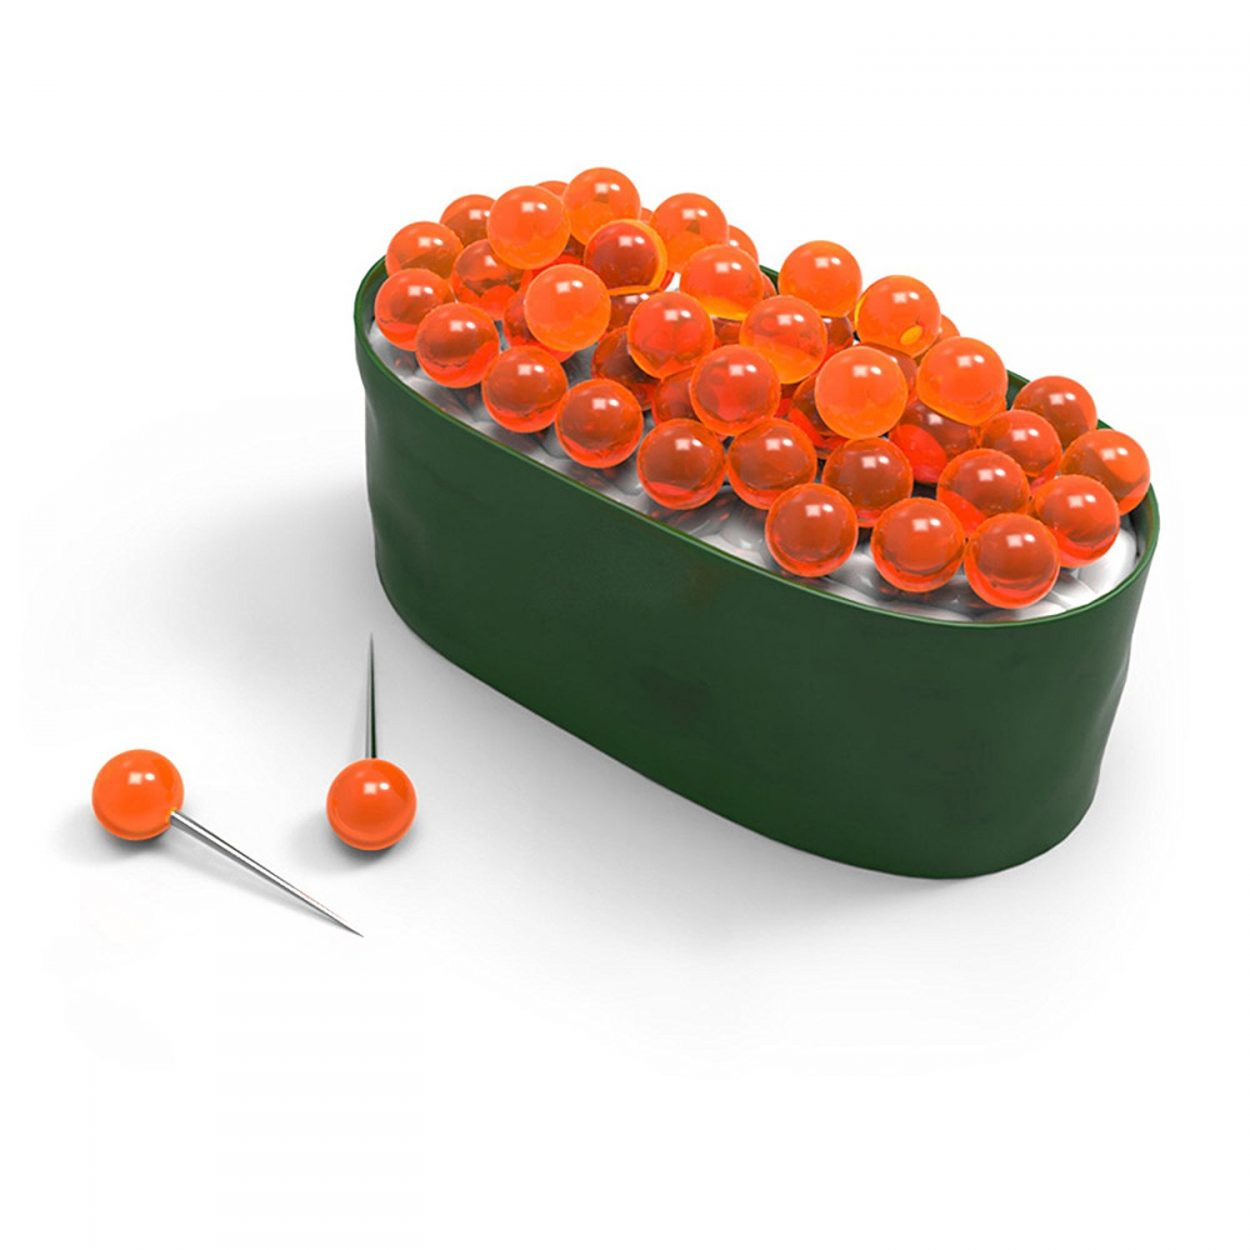 Sushi Roll Shaped Push Pins